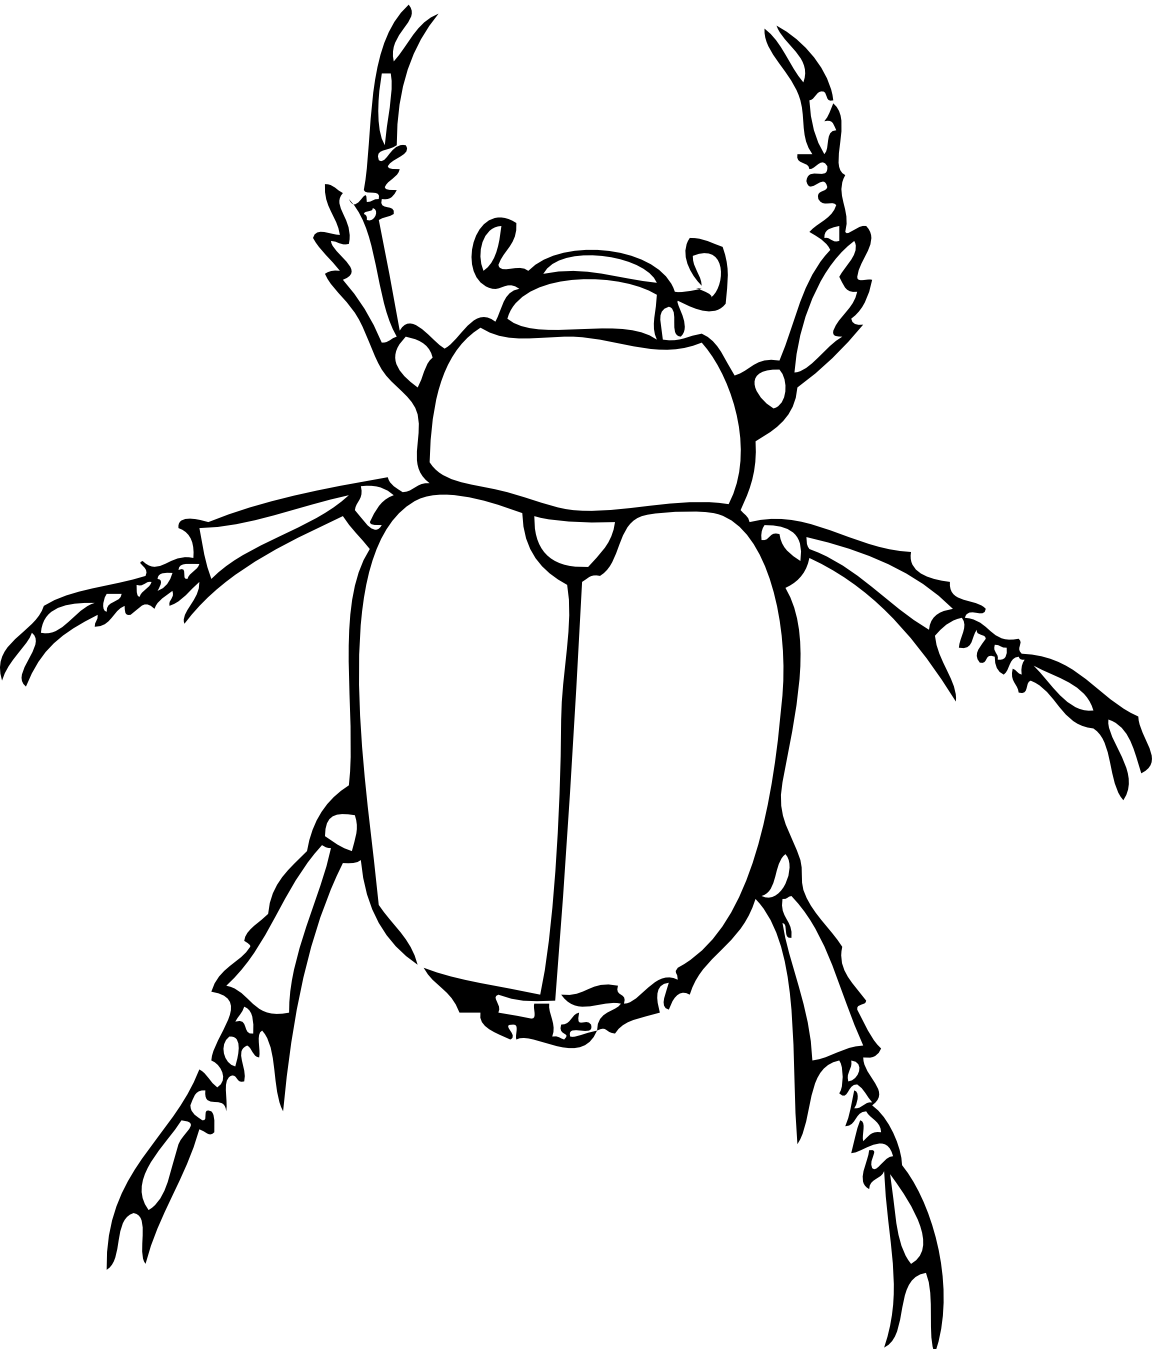 clip art black and white bug line drawing